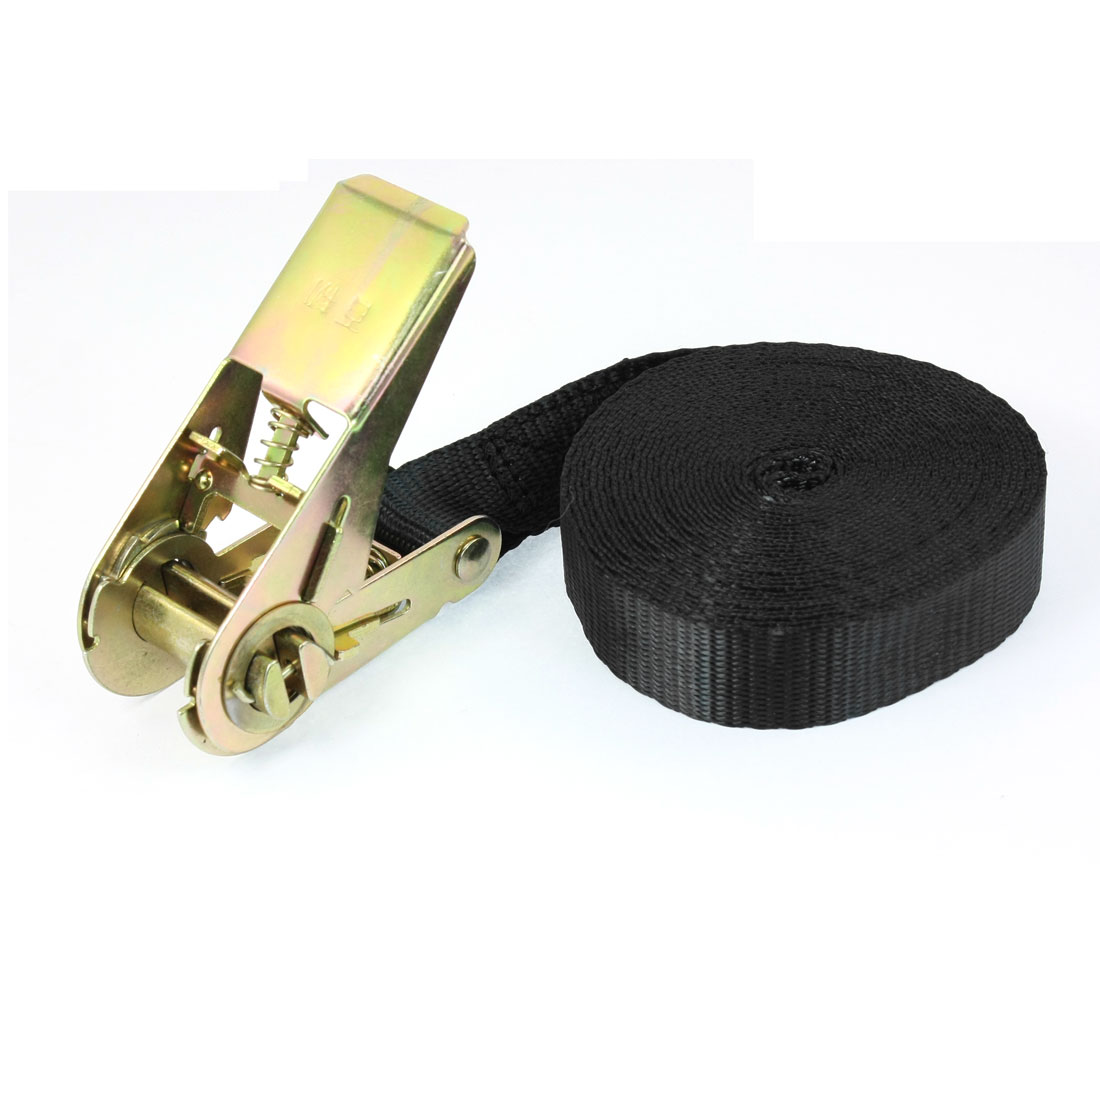 Travel Luggage Binding Band Metal Ratchet Tie Down Strap 5M 16ft Black